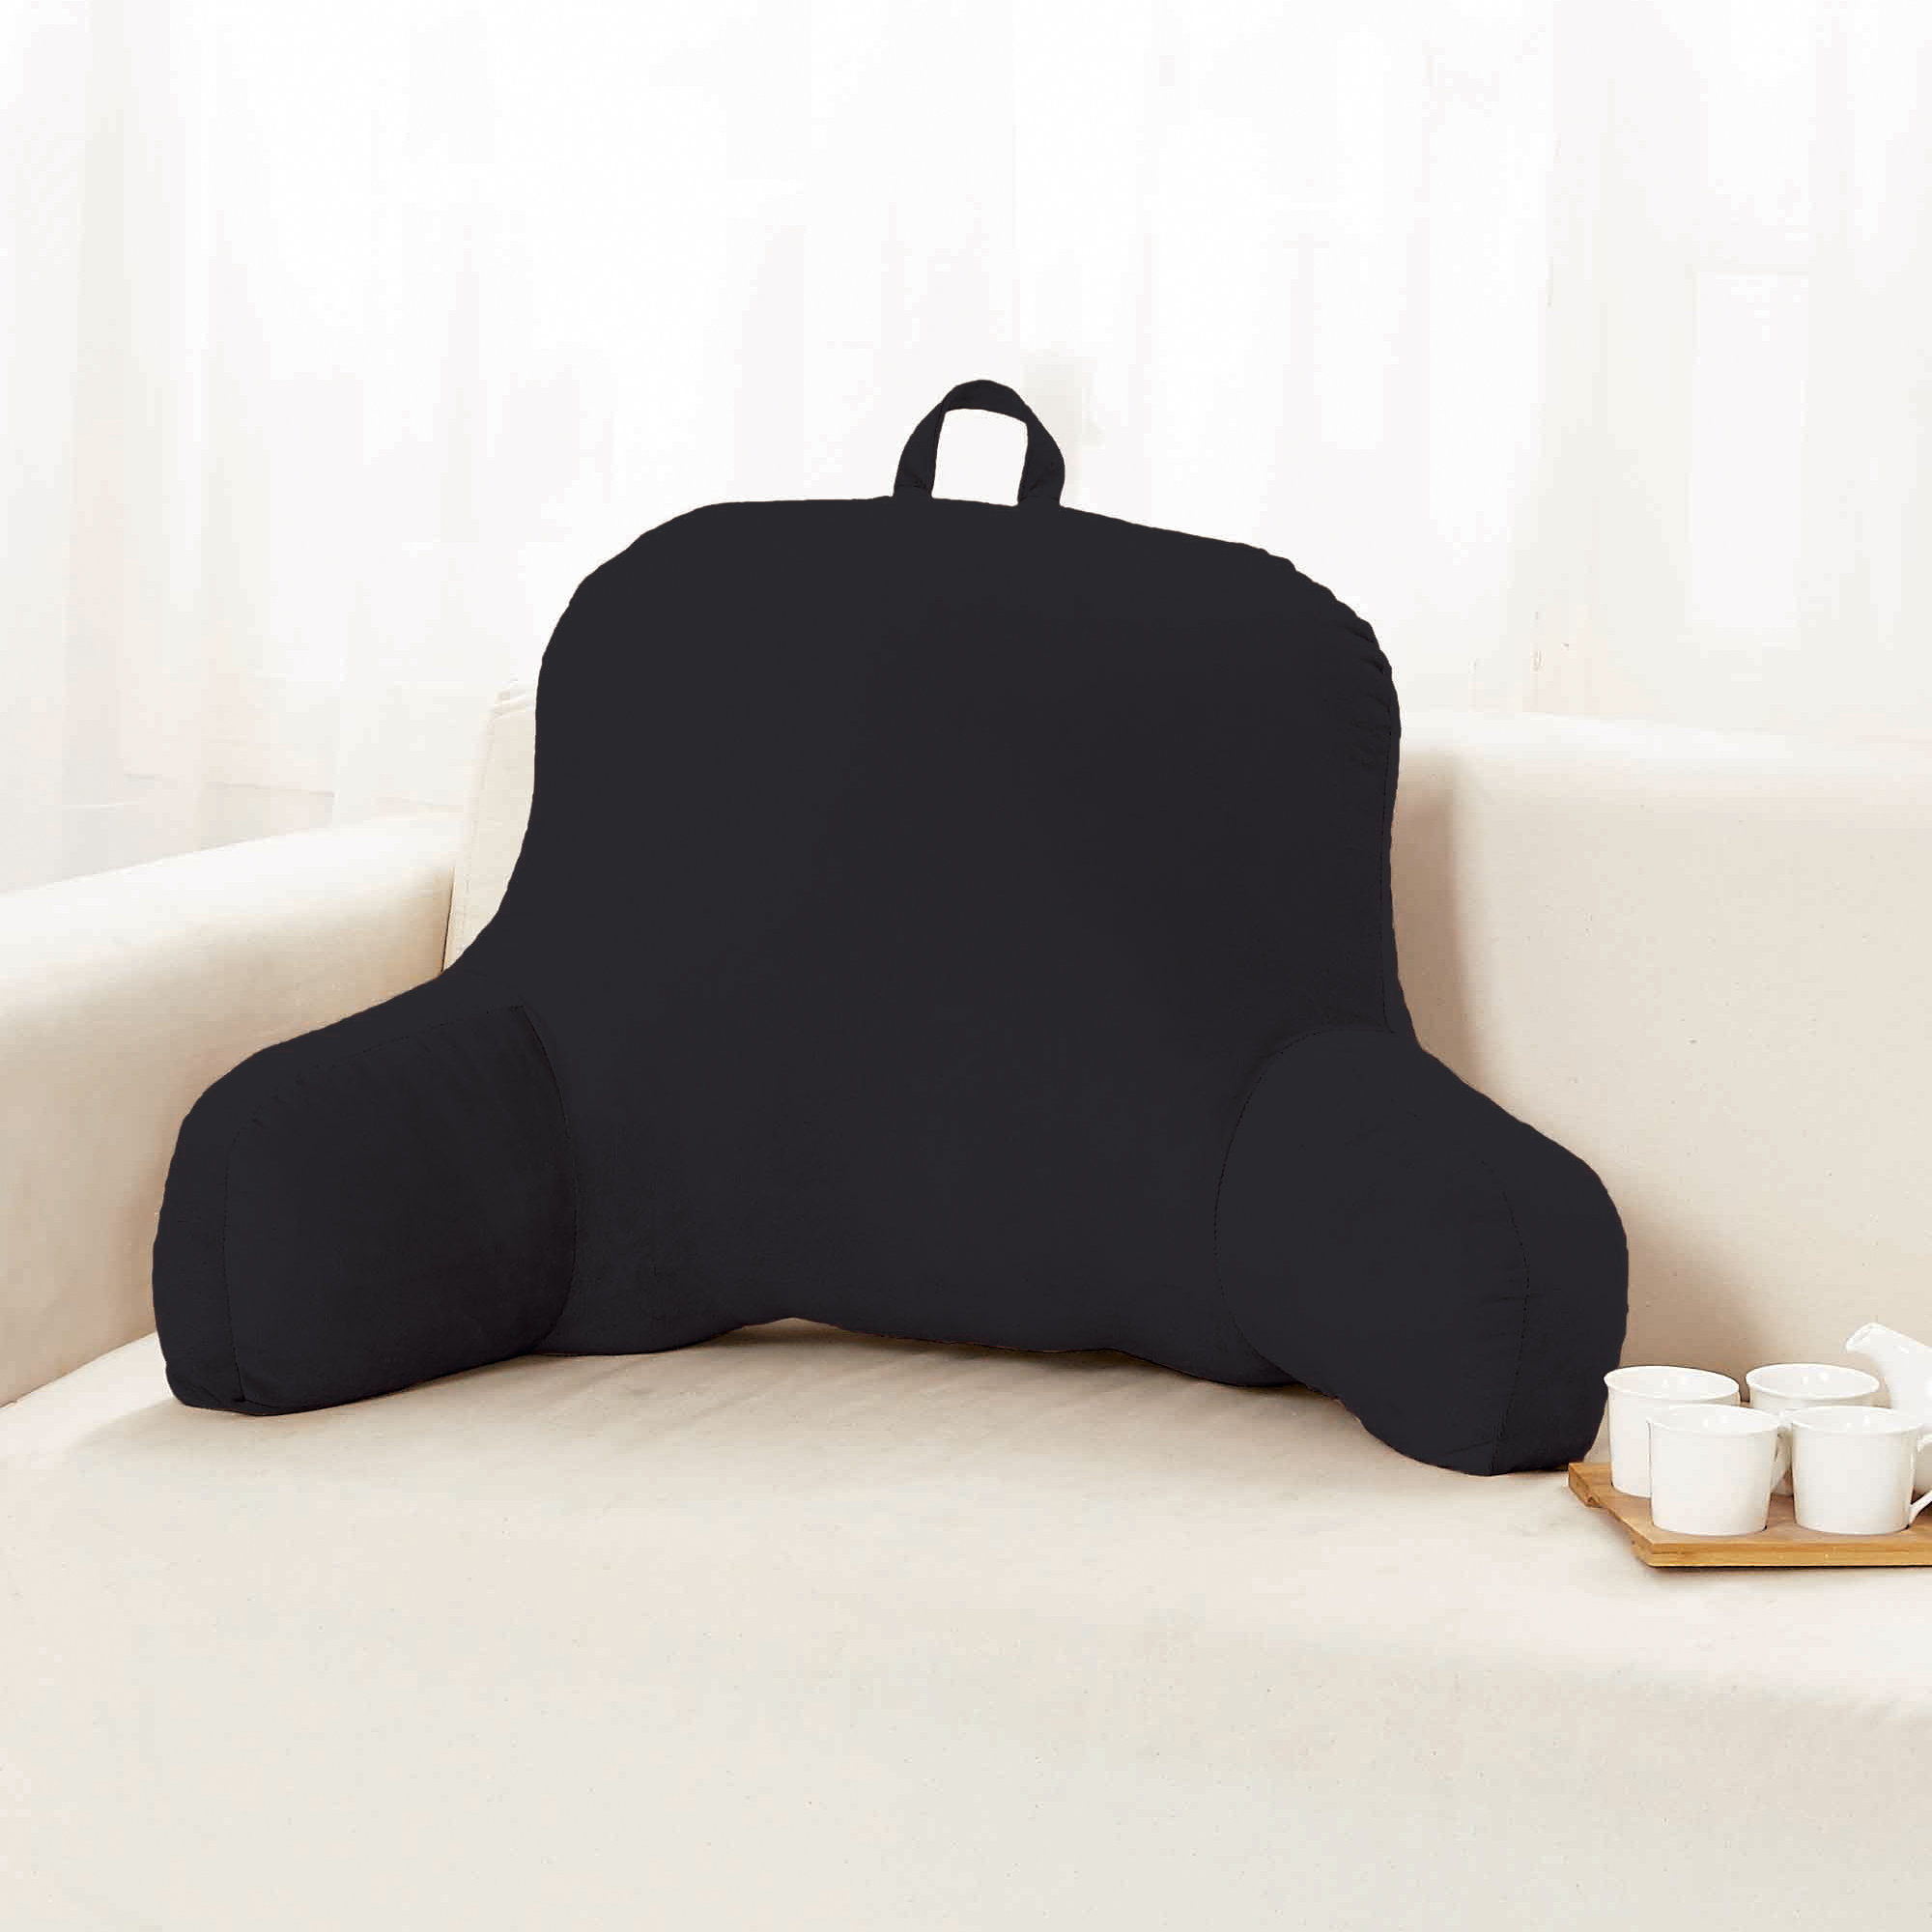 bed rest pillow with arms